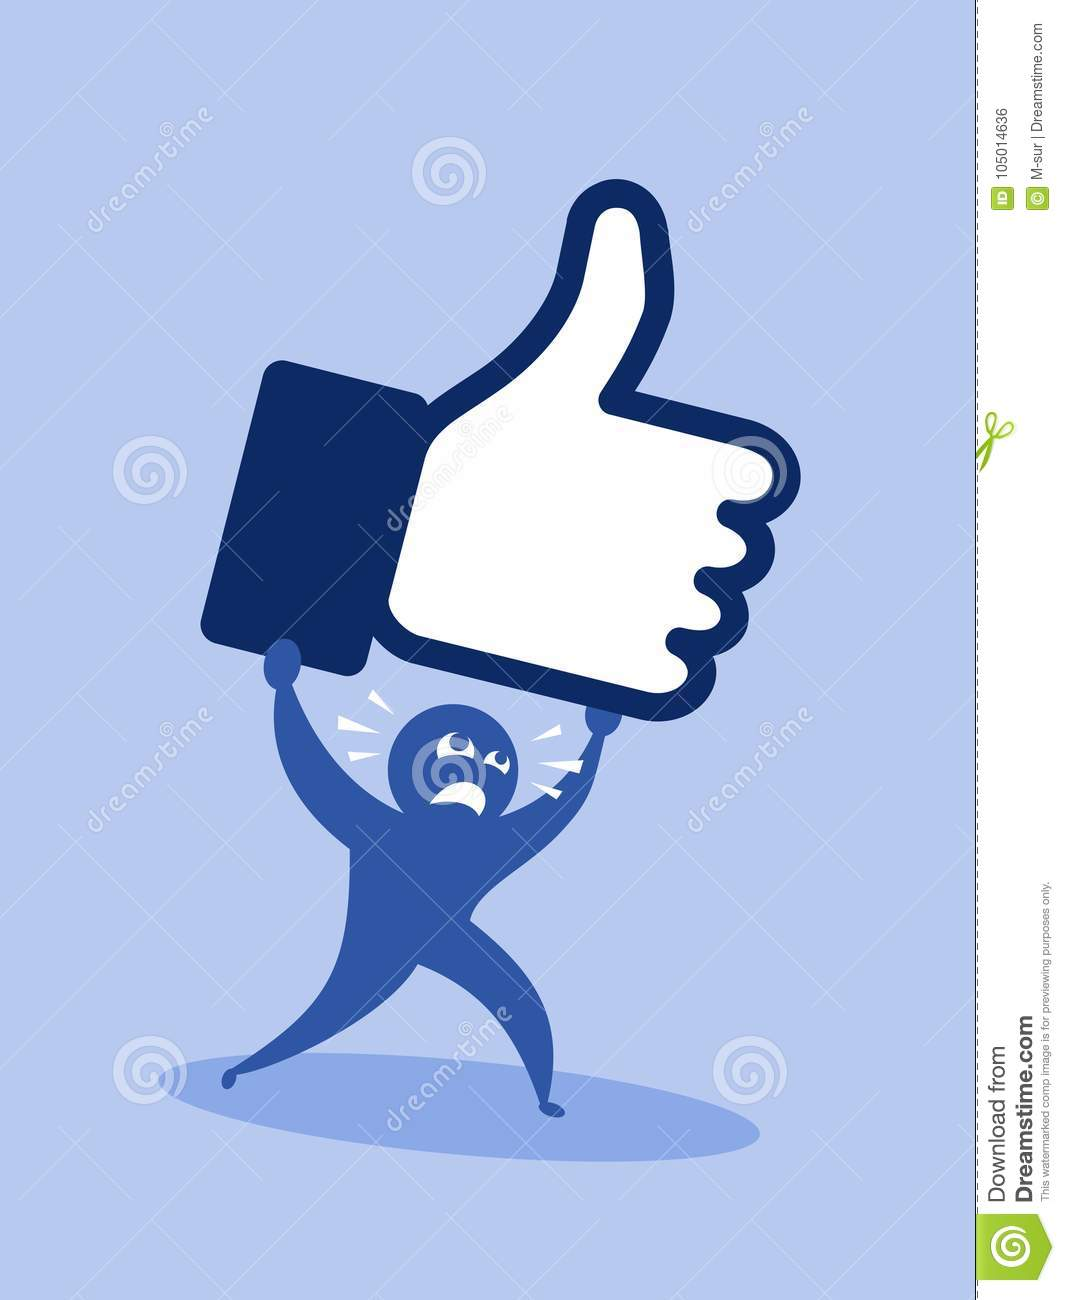 Popularity On Social Networking Sites And Difficulty Stock Vector